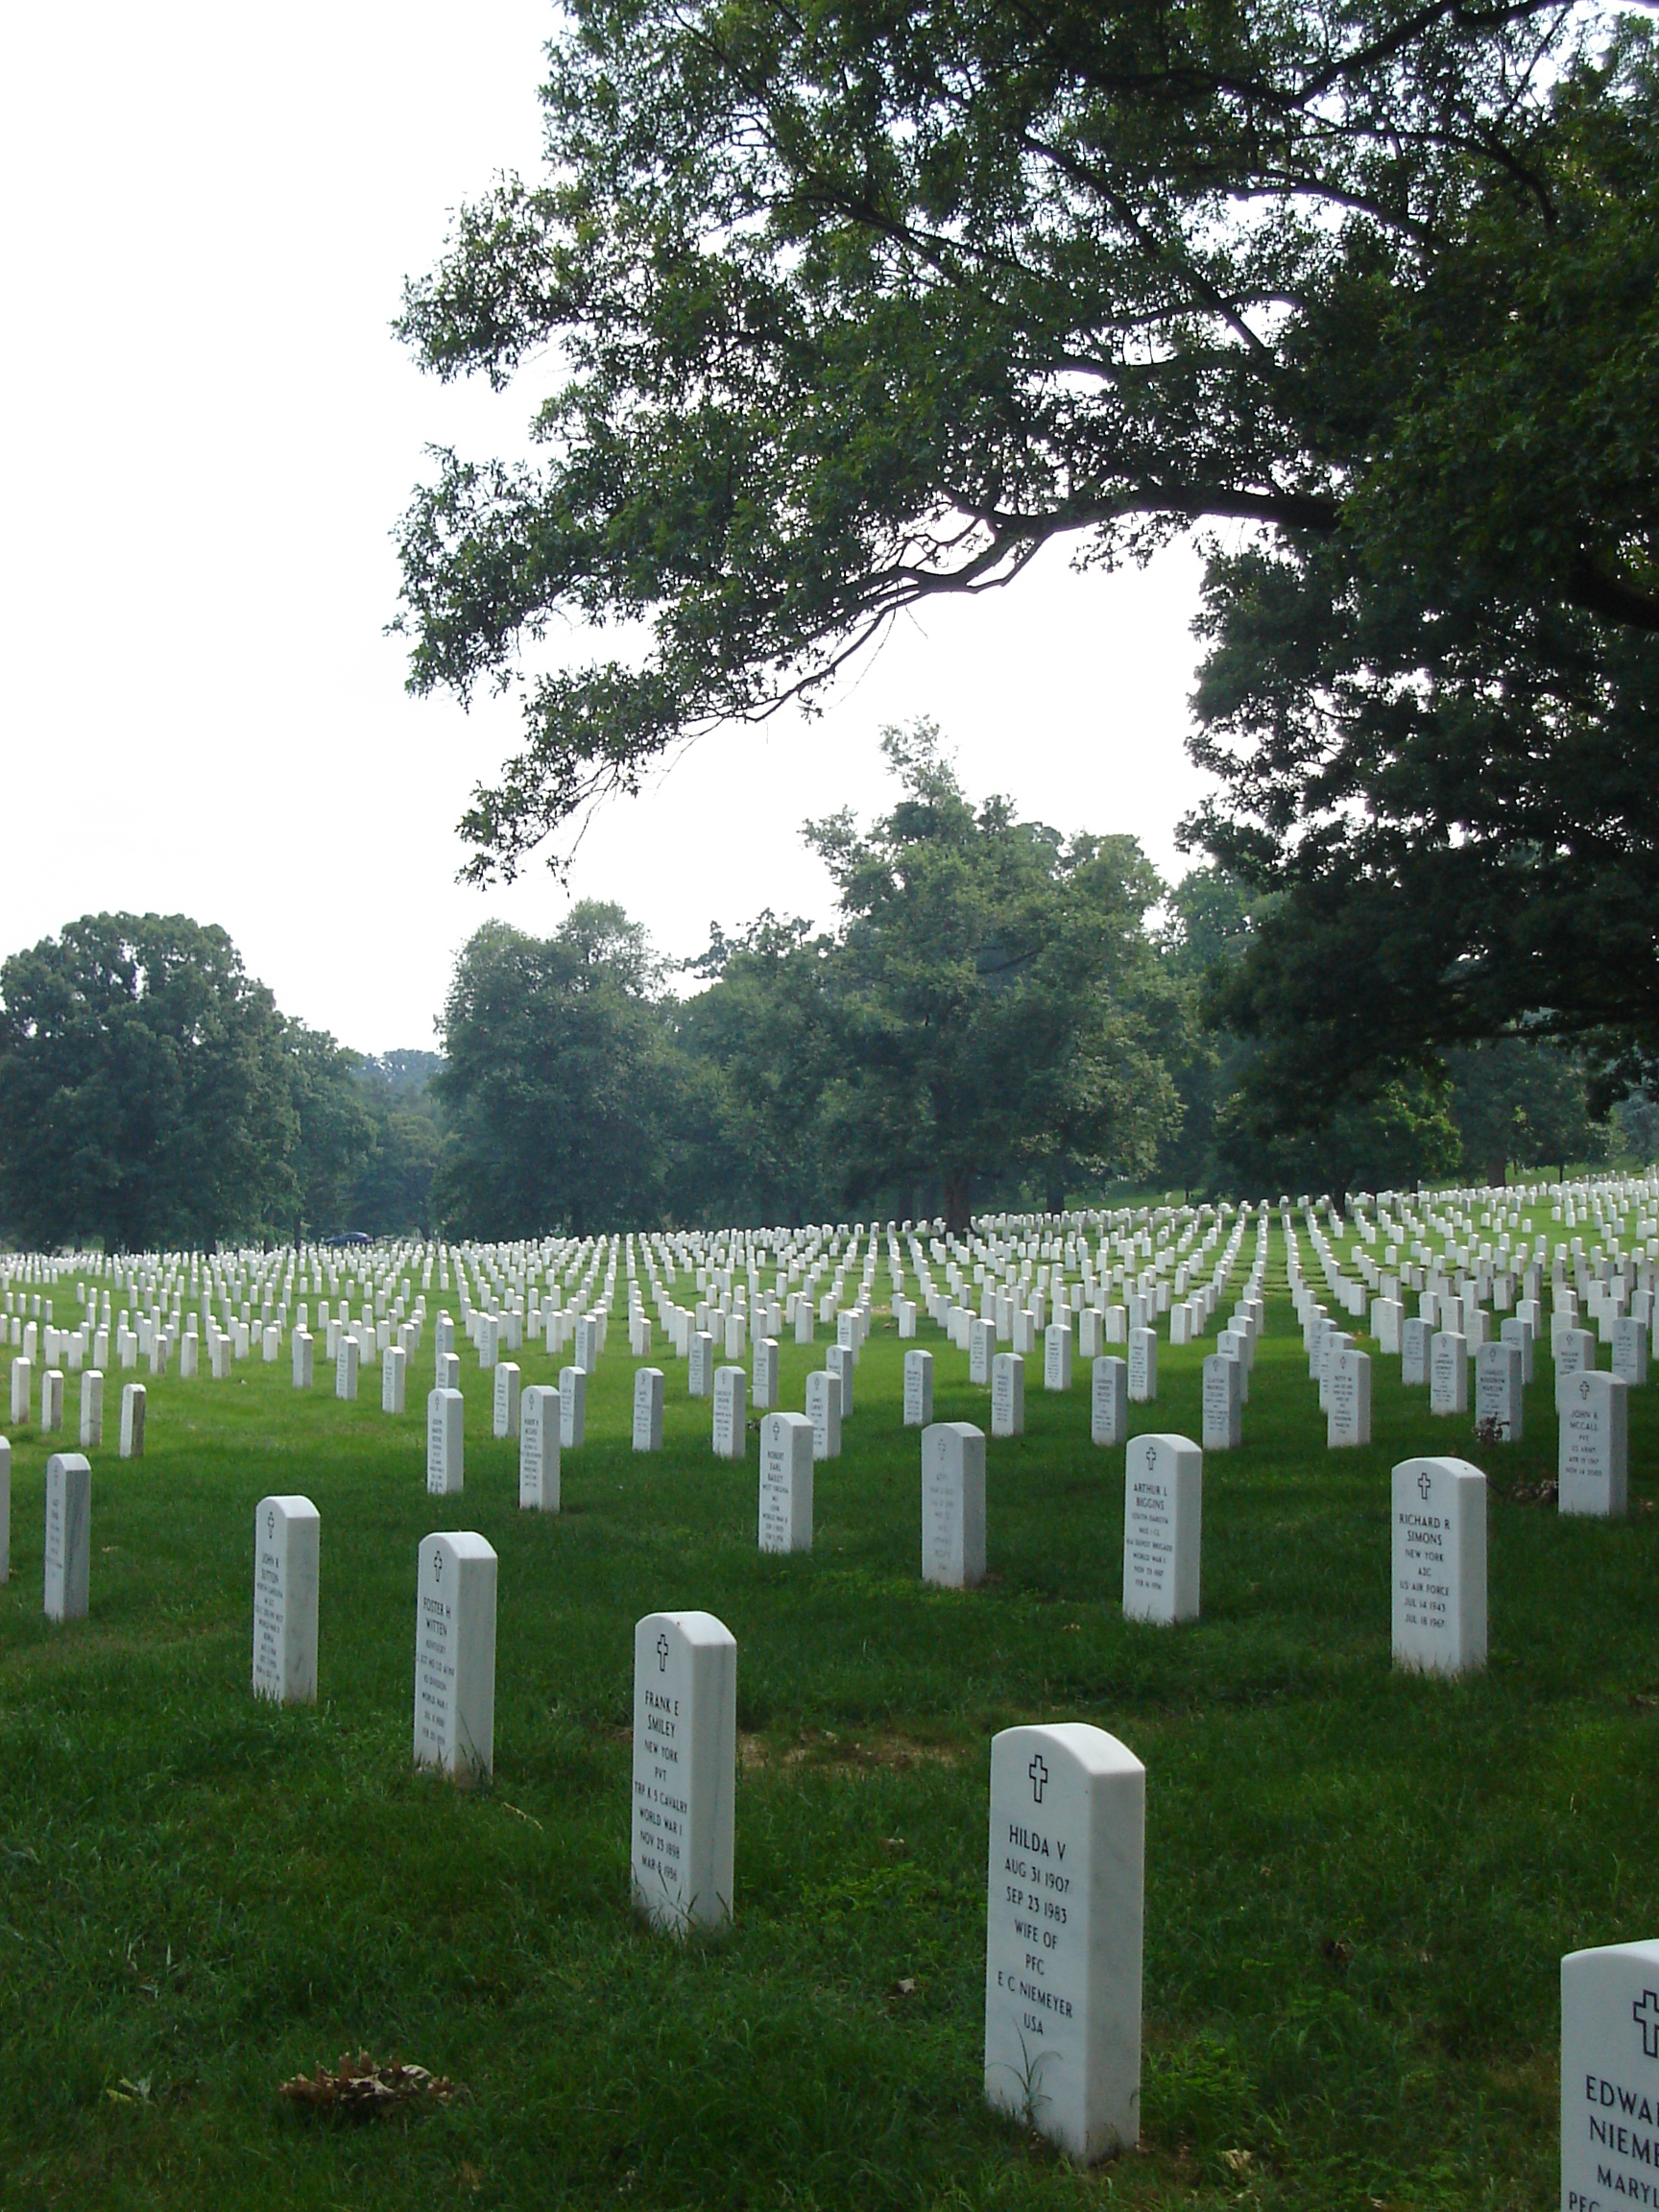 Arlington National Cemetery mismanagement controversy - Wikipedia on walking map of downtown dc, white house washington dc, map of glenwood cemetery washington dc, map of dc monuments, map of arlington cemetery map pdf, map of dc attractions walking, smithsonian natural history museum washington dc,